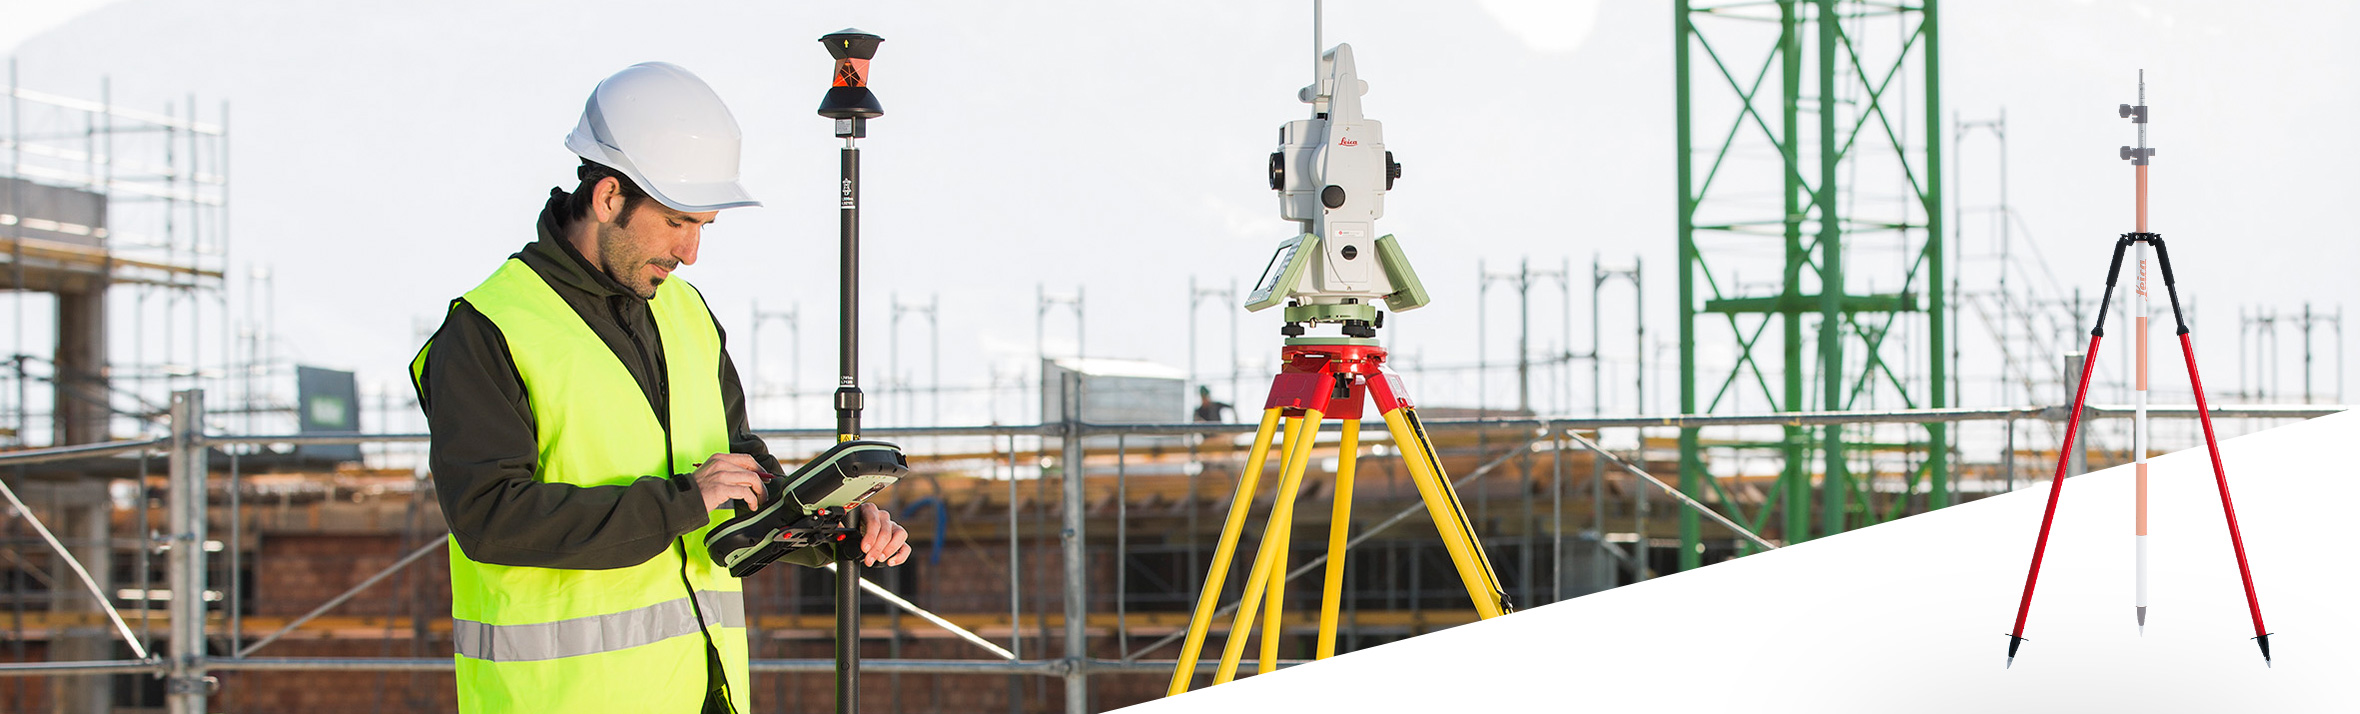 Leica Geosystems Accessoires – Loodstaven